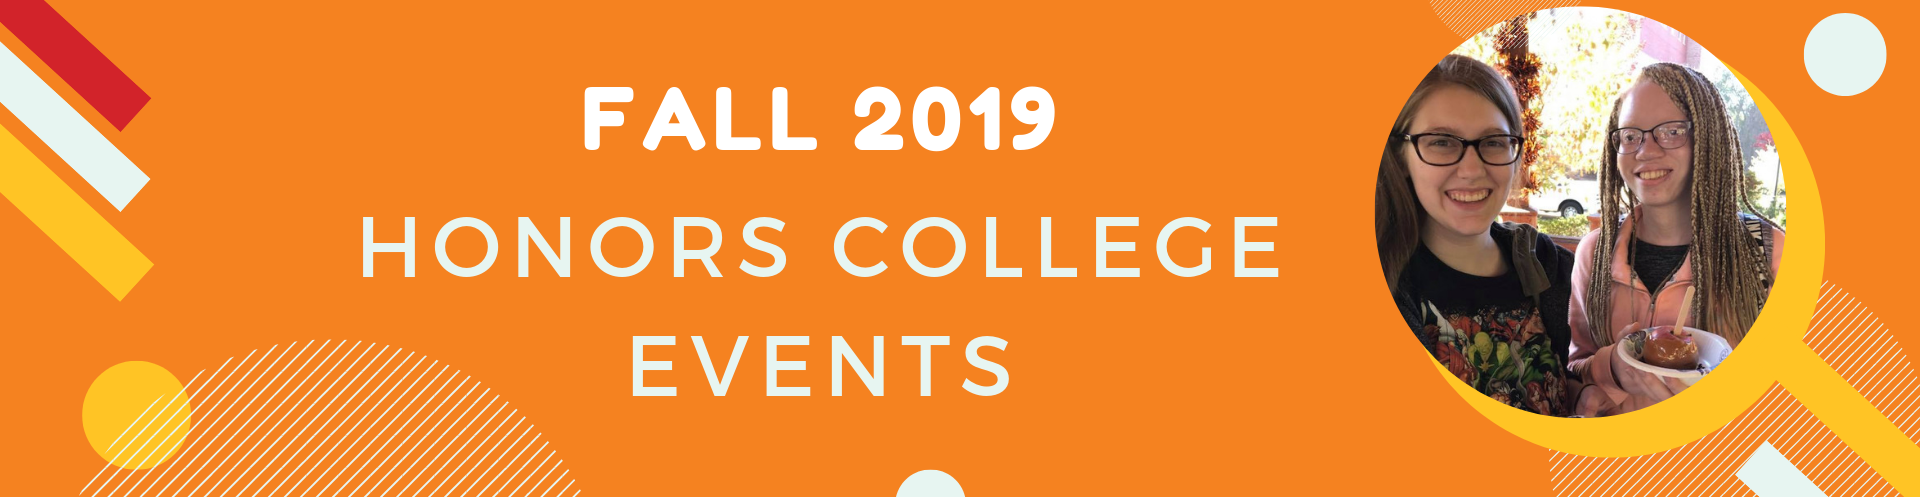 Fall 2019 Honors Events